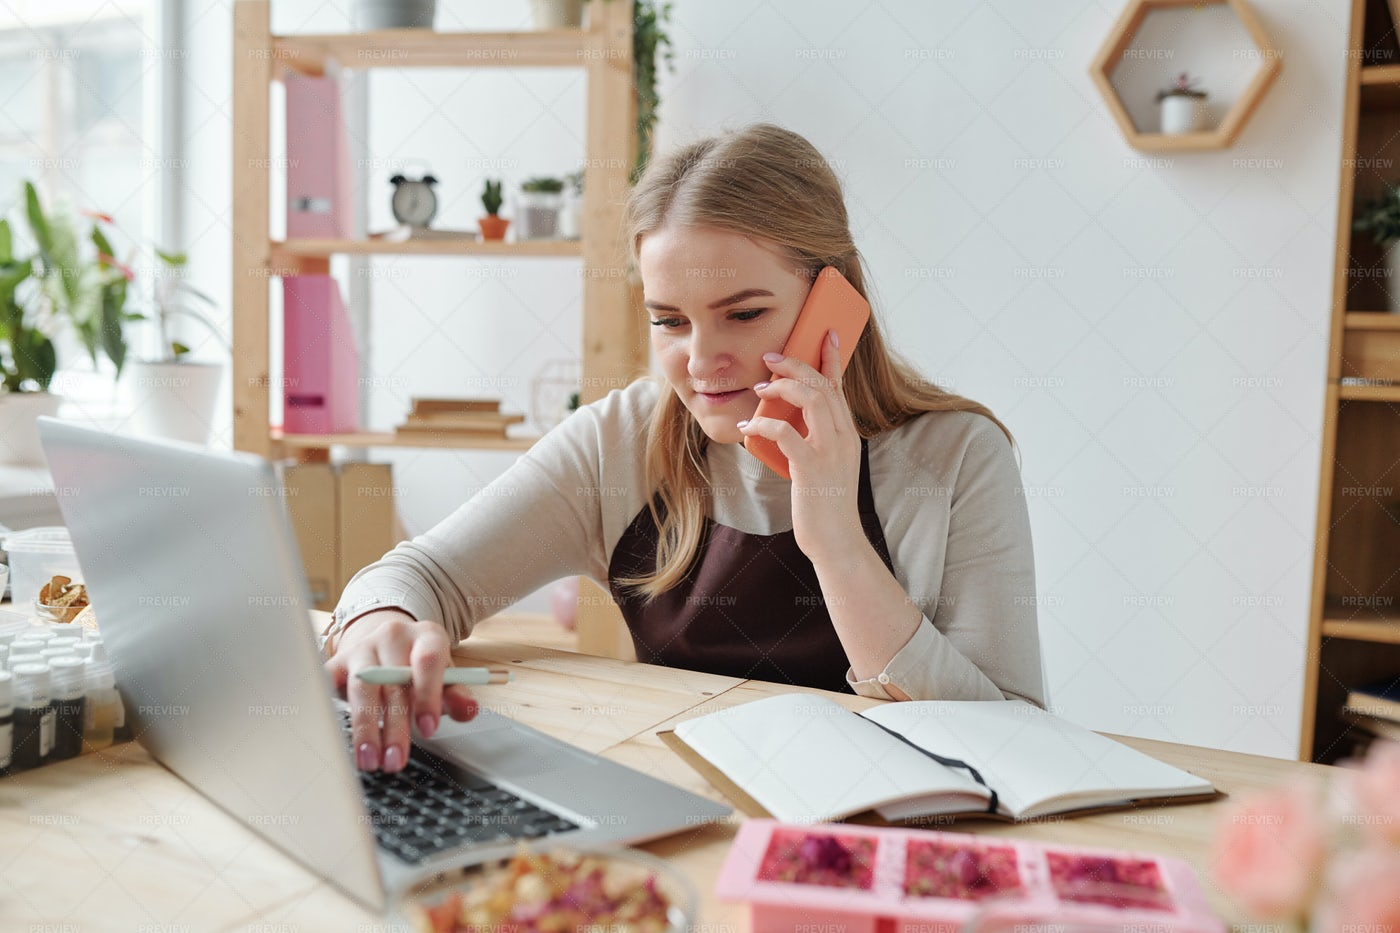 Busy Female With Smartphone Sitting...: Stock Photos